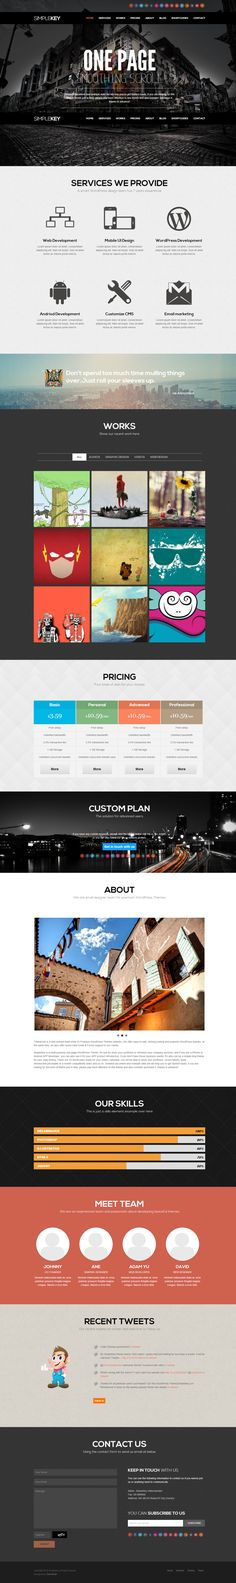 parallax design - SimpleKey - One Page Portfolio #WordPress Theme